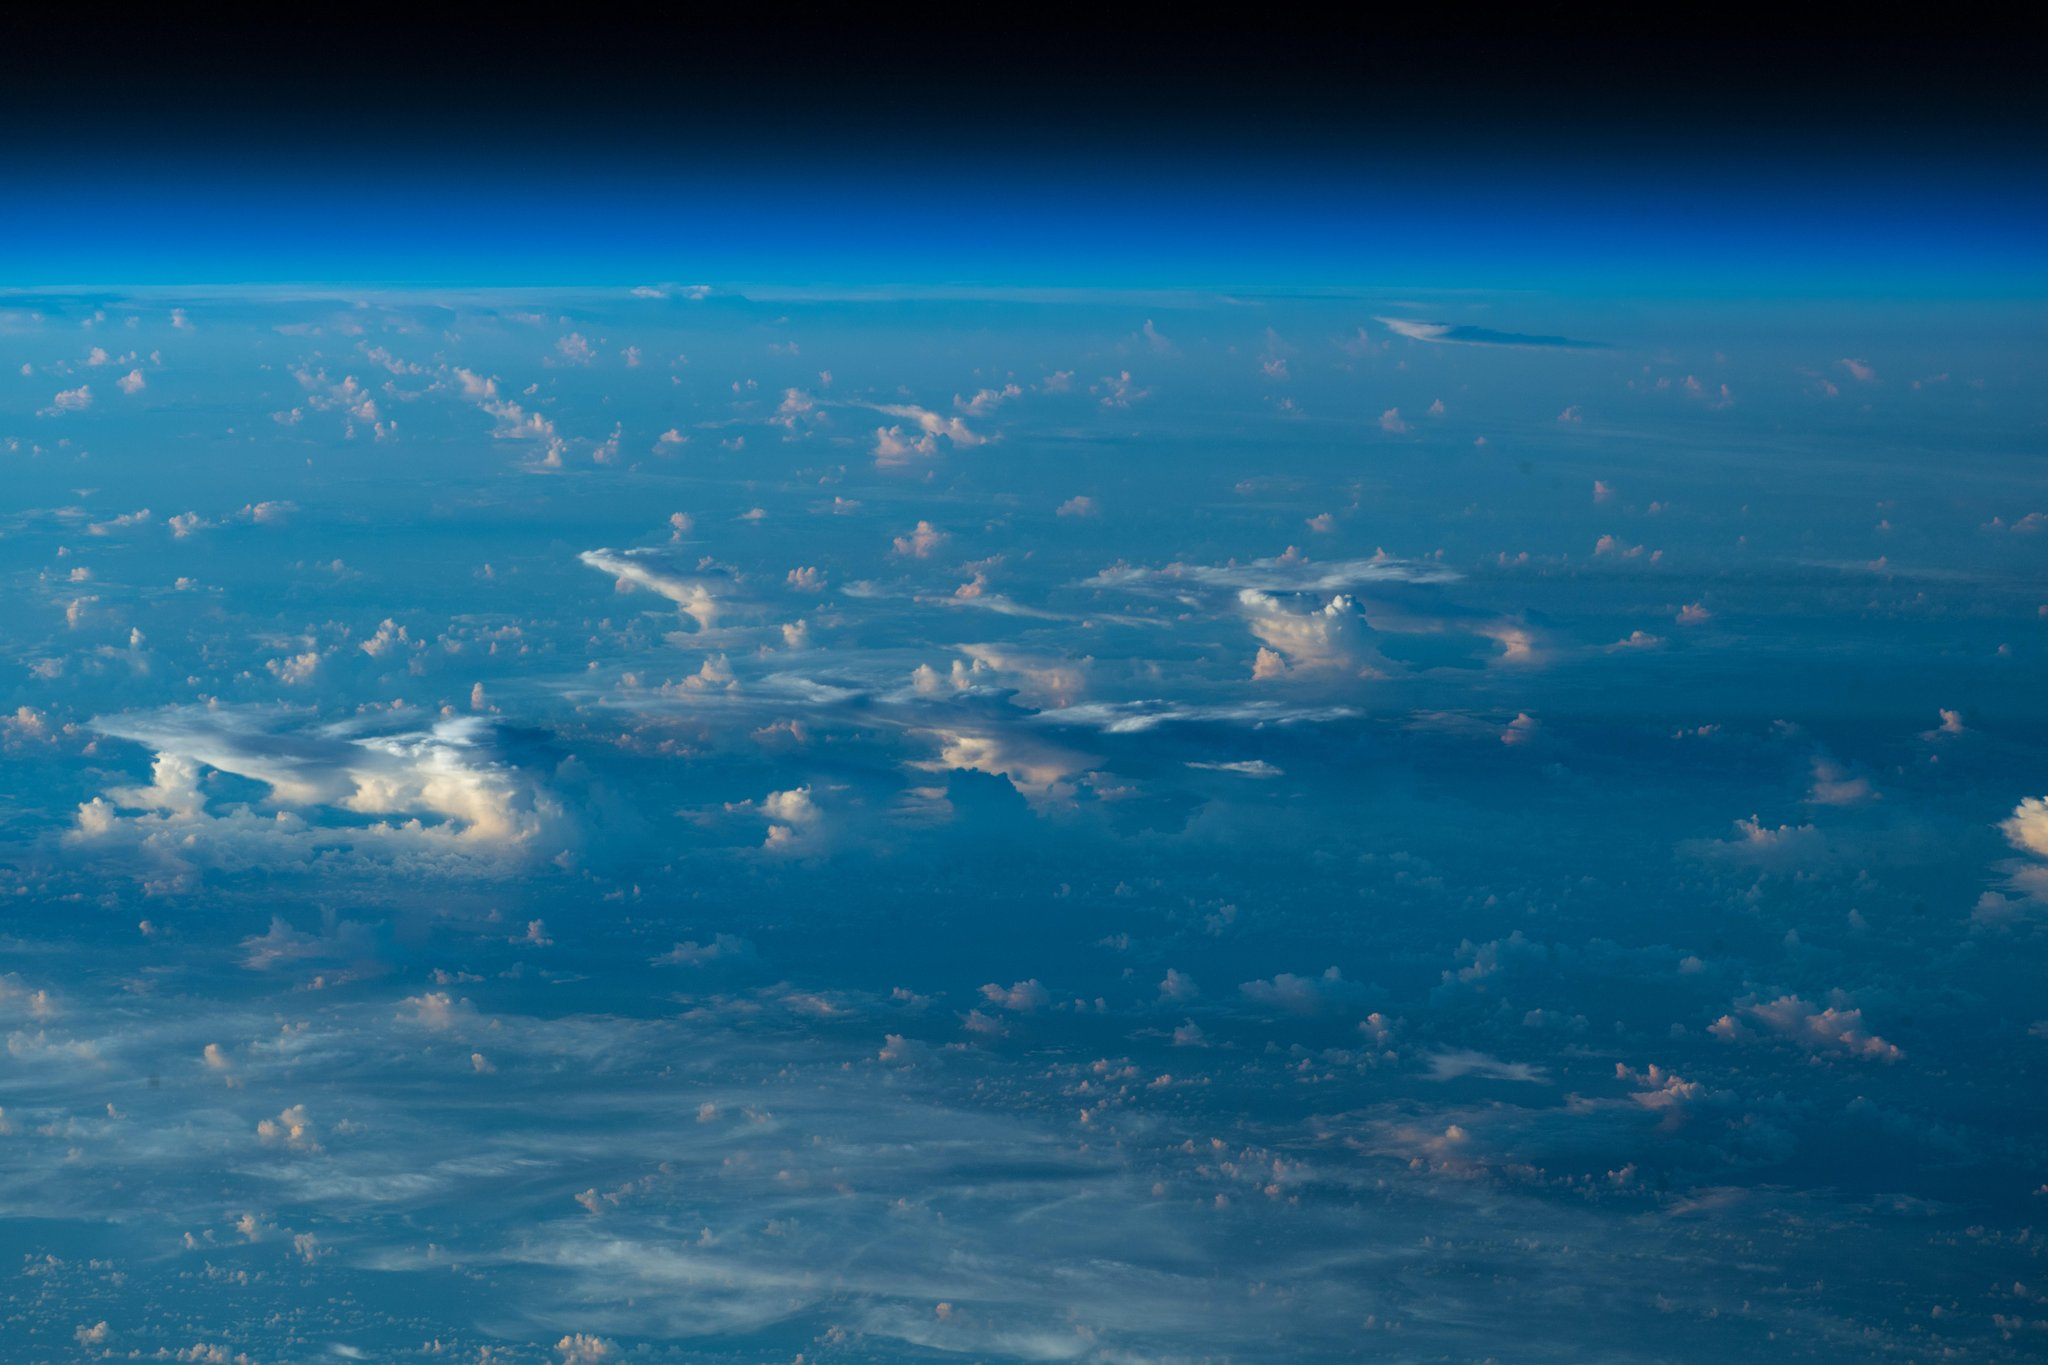 Cloud shadows. Just can't get enough of them  (Photo & Caption: Alexander Gerst / NASA)